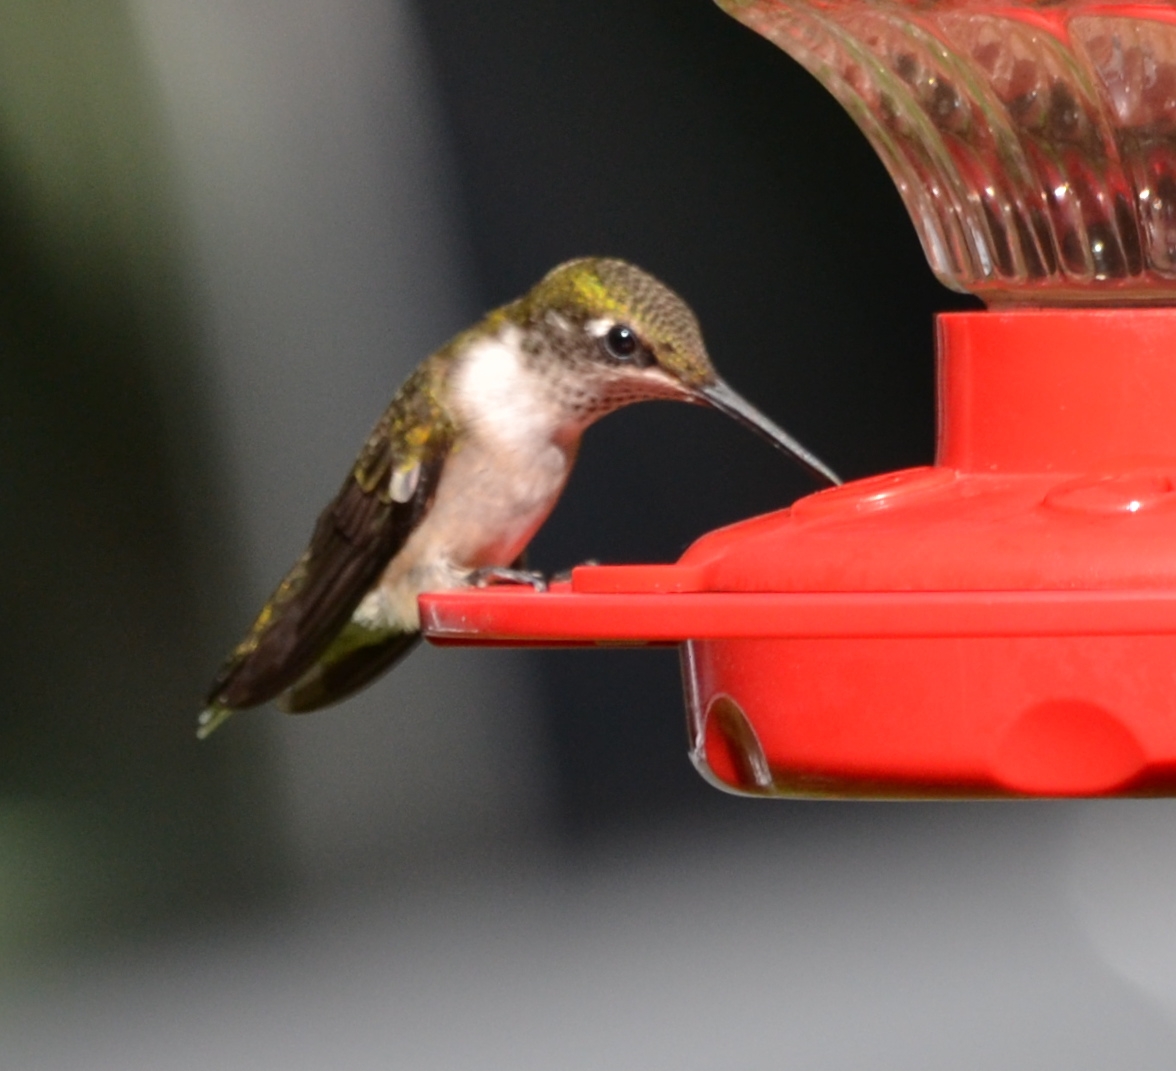 How To Make Hummingbird Food Without Boiling